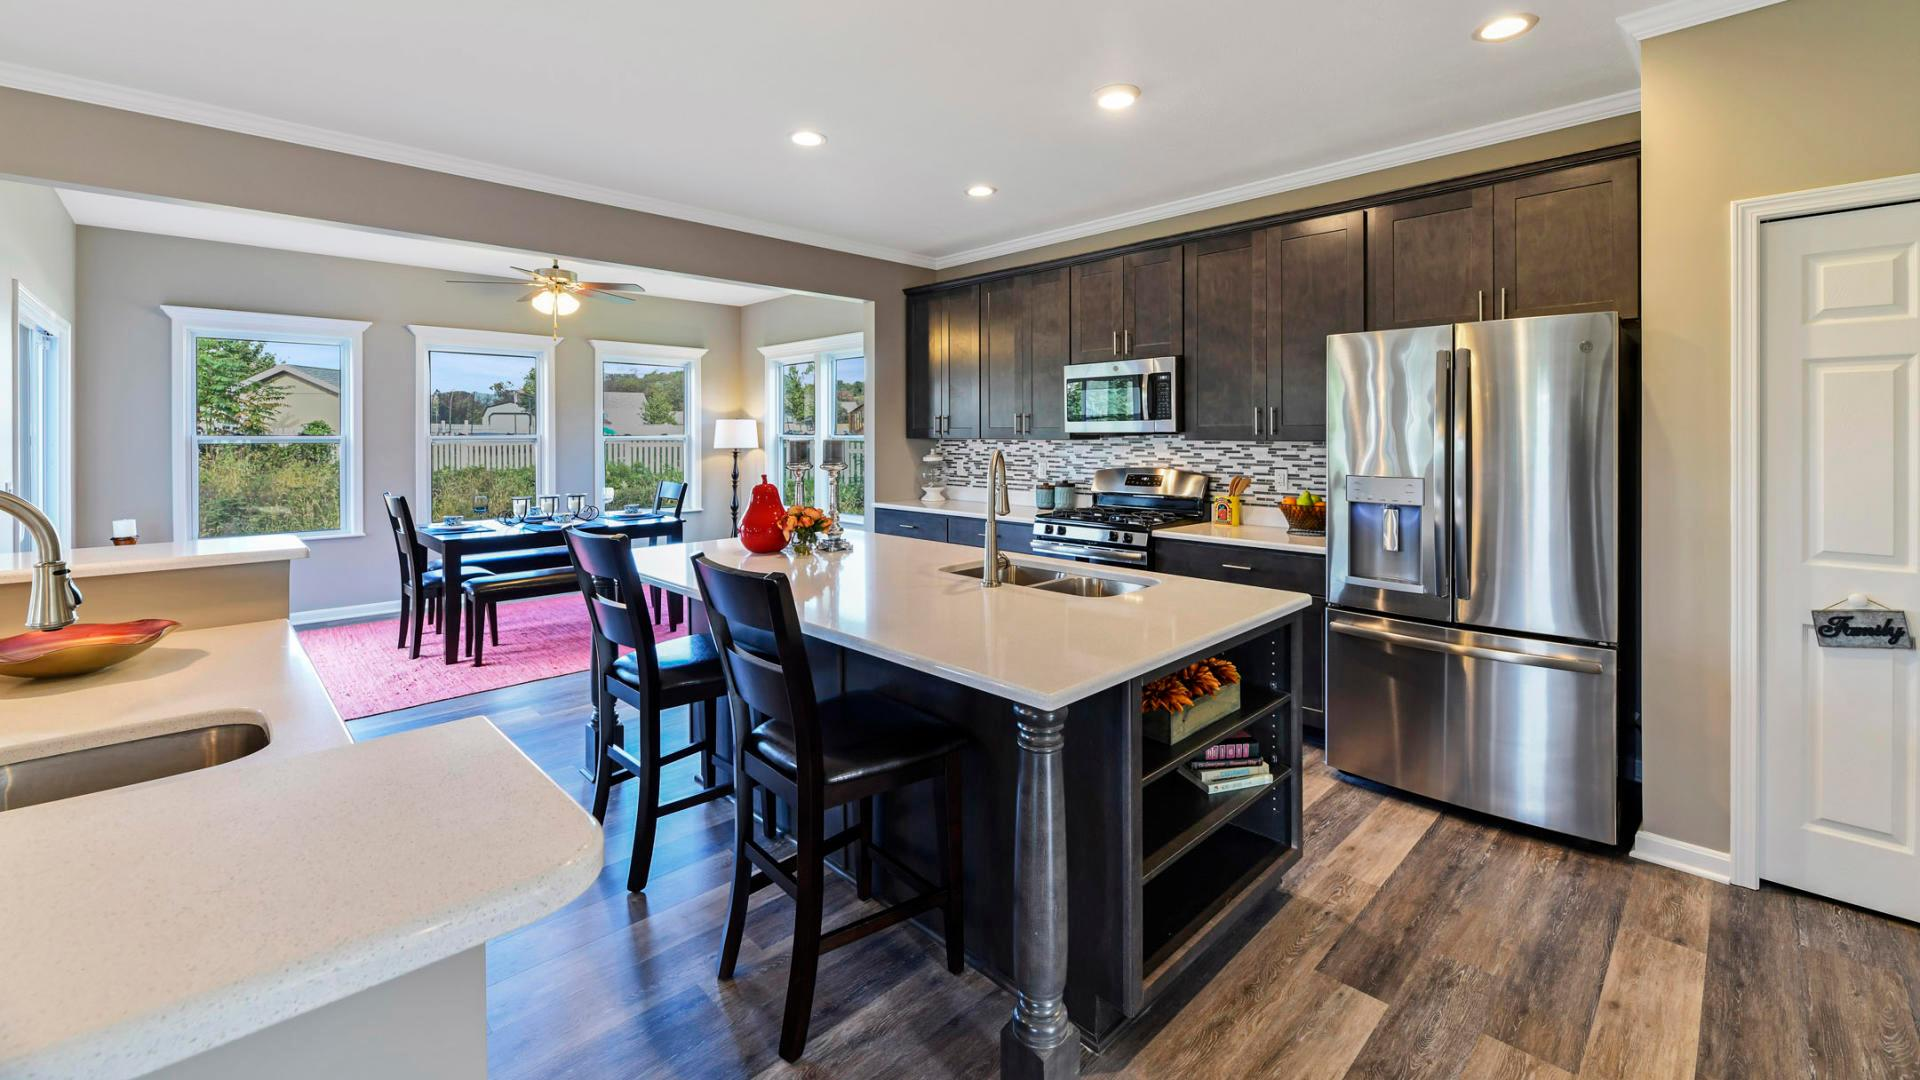 Kitchen featured in the Cheshire By Maronda Homes in Pittsburgh, PA